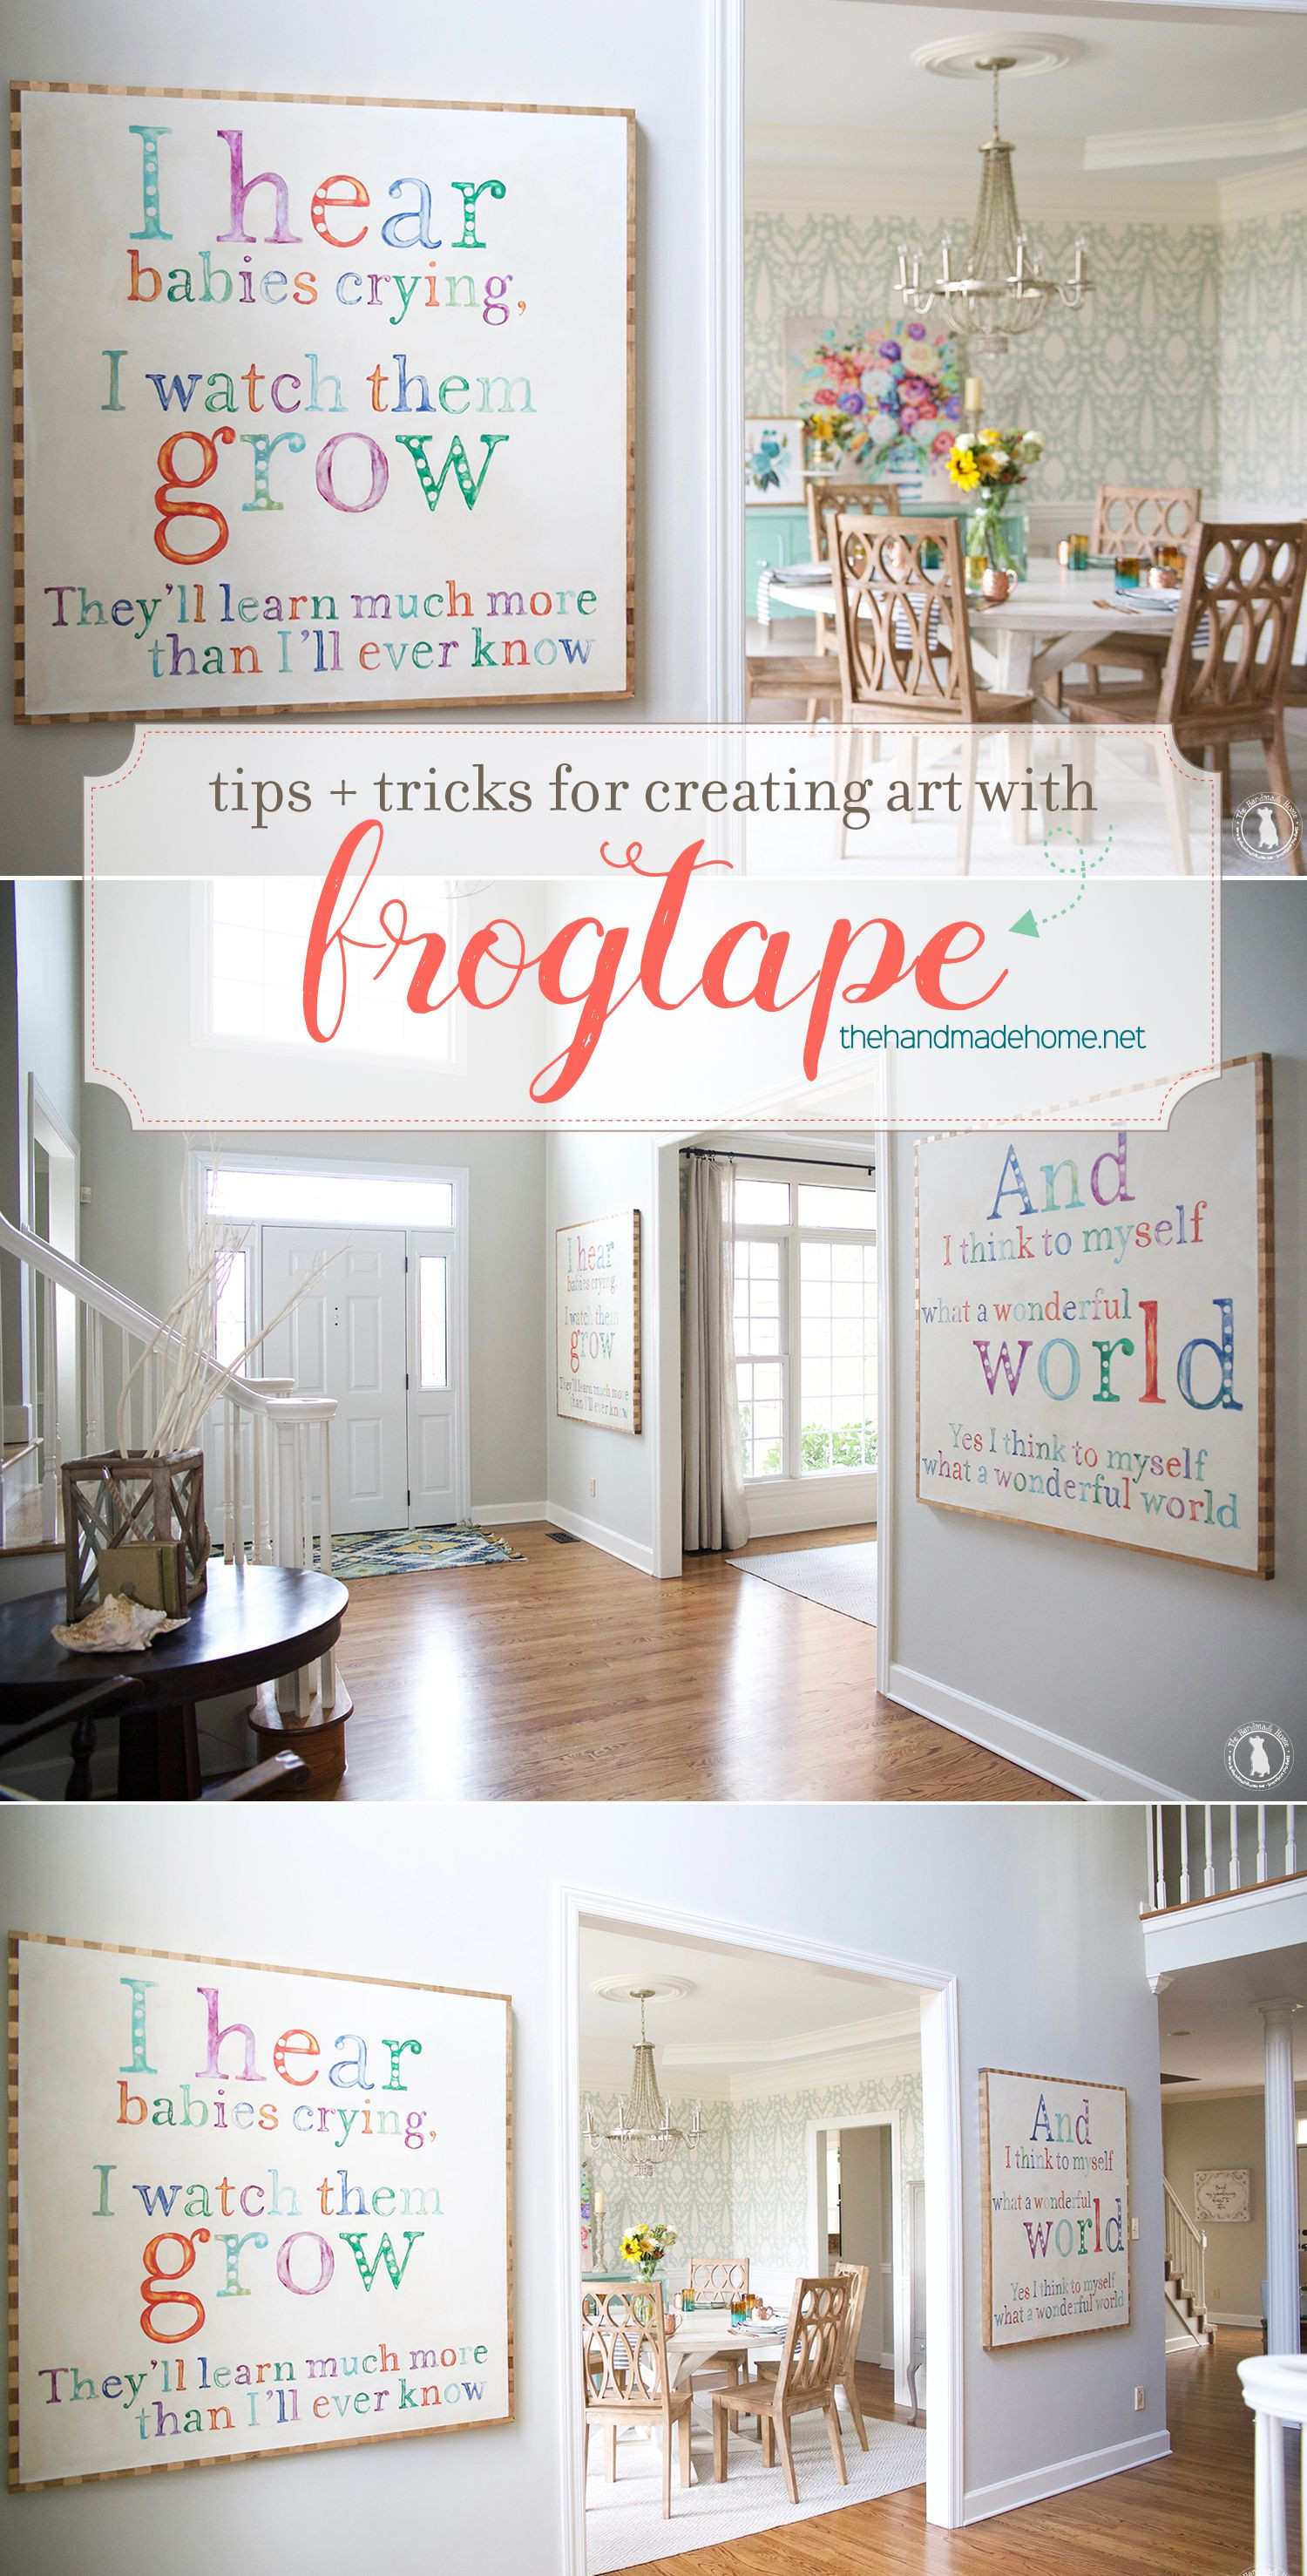 Diy Bedroom Decor It Yourself Tips and Tricks for Creating Art with Frog Tape